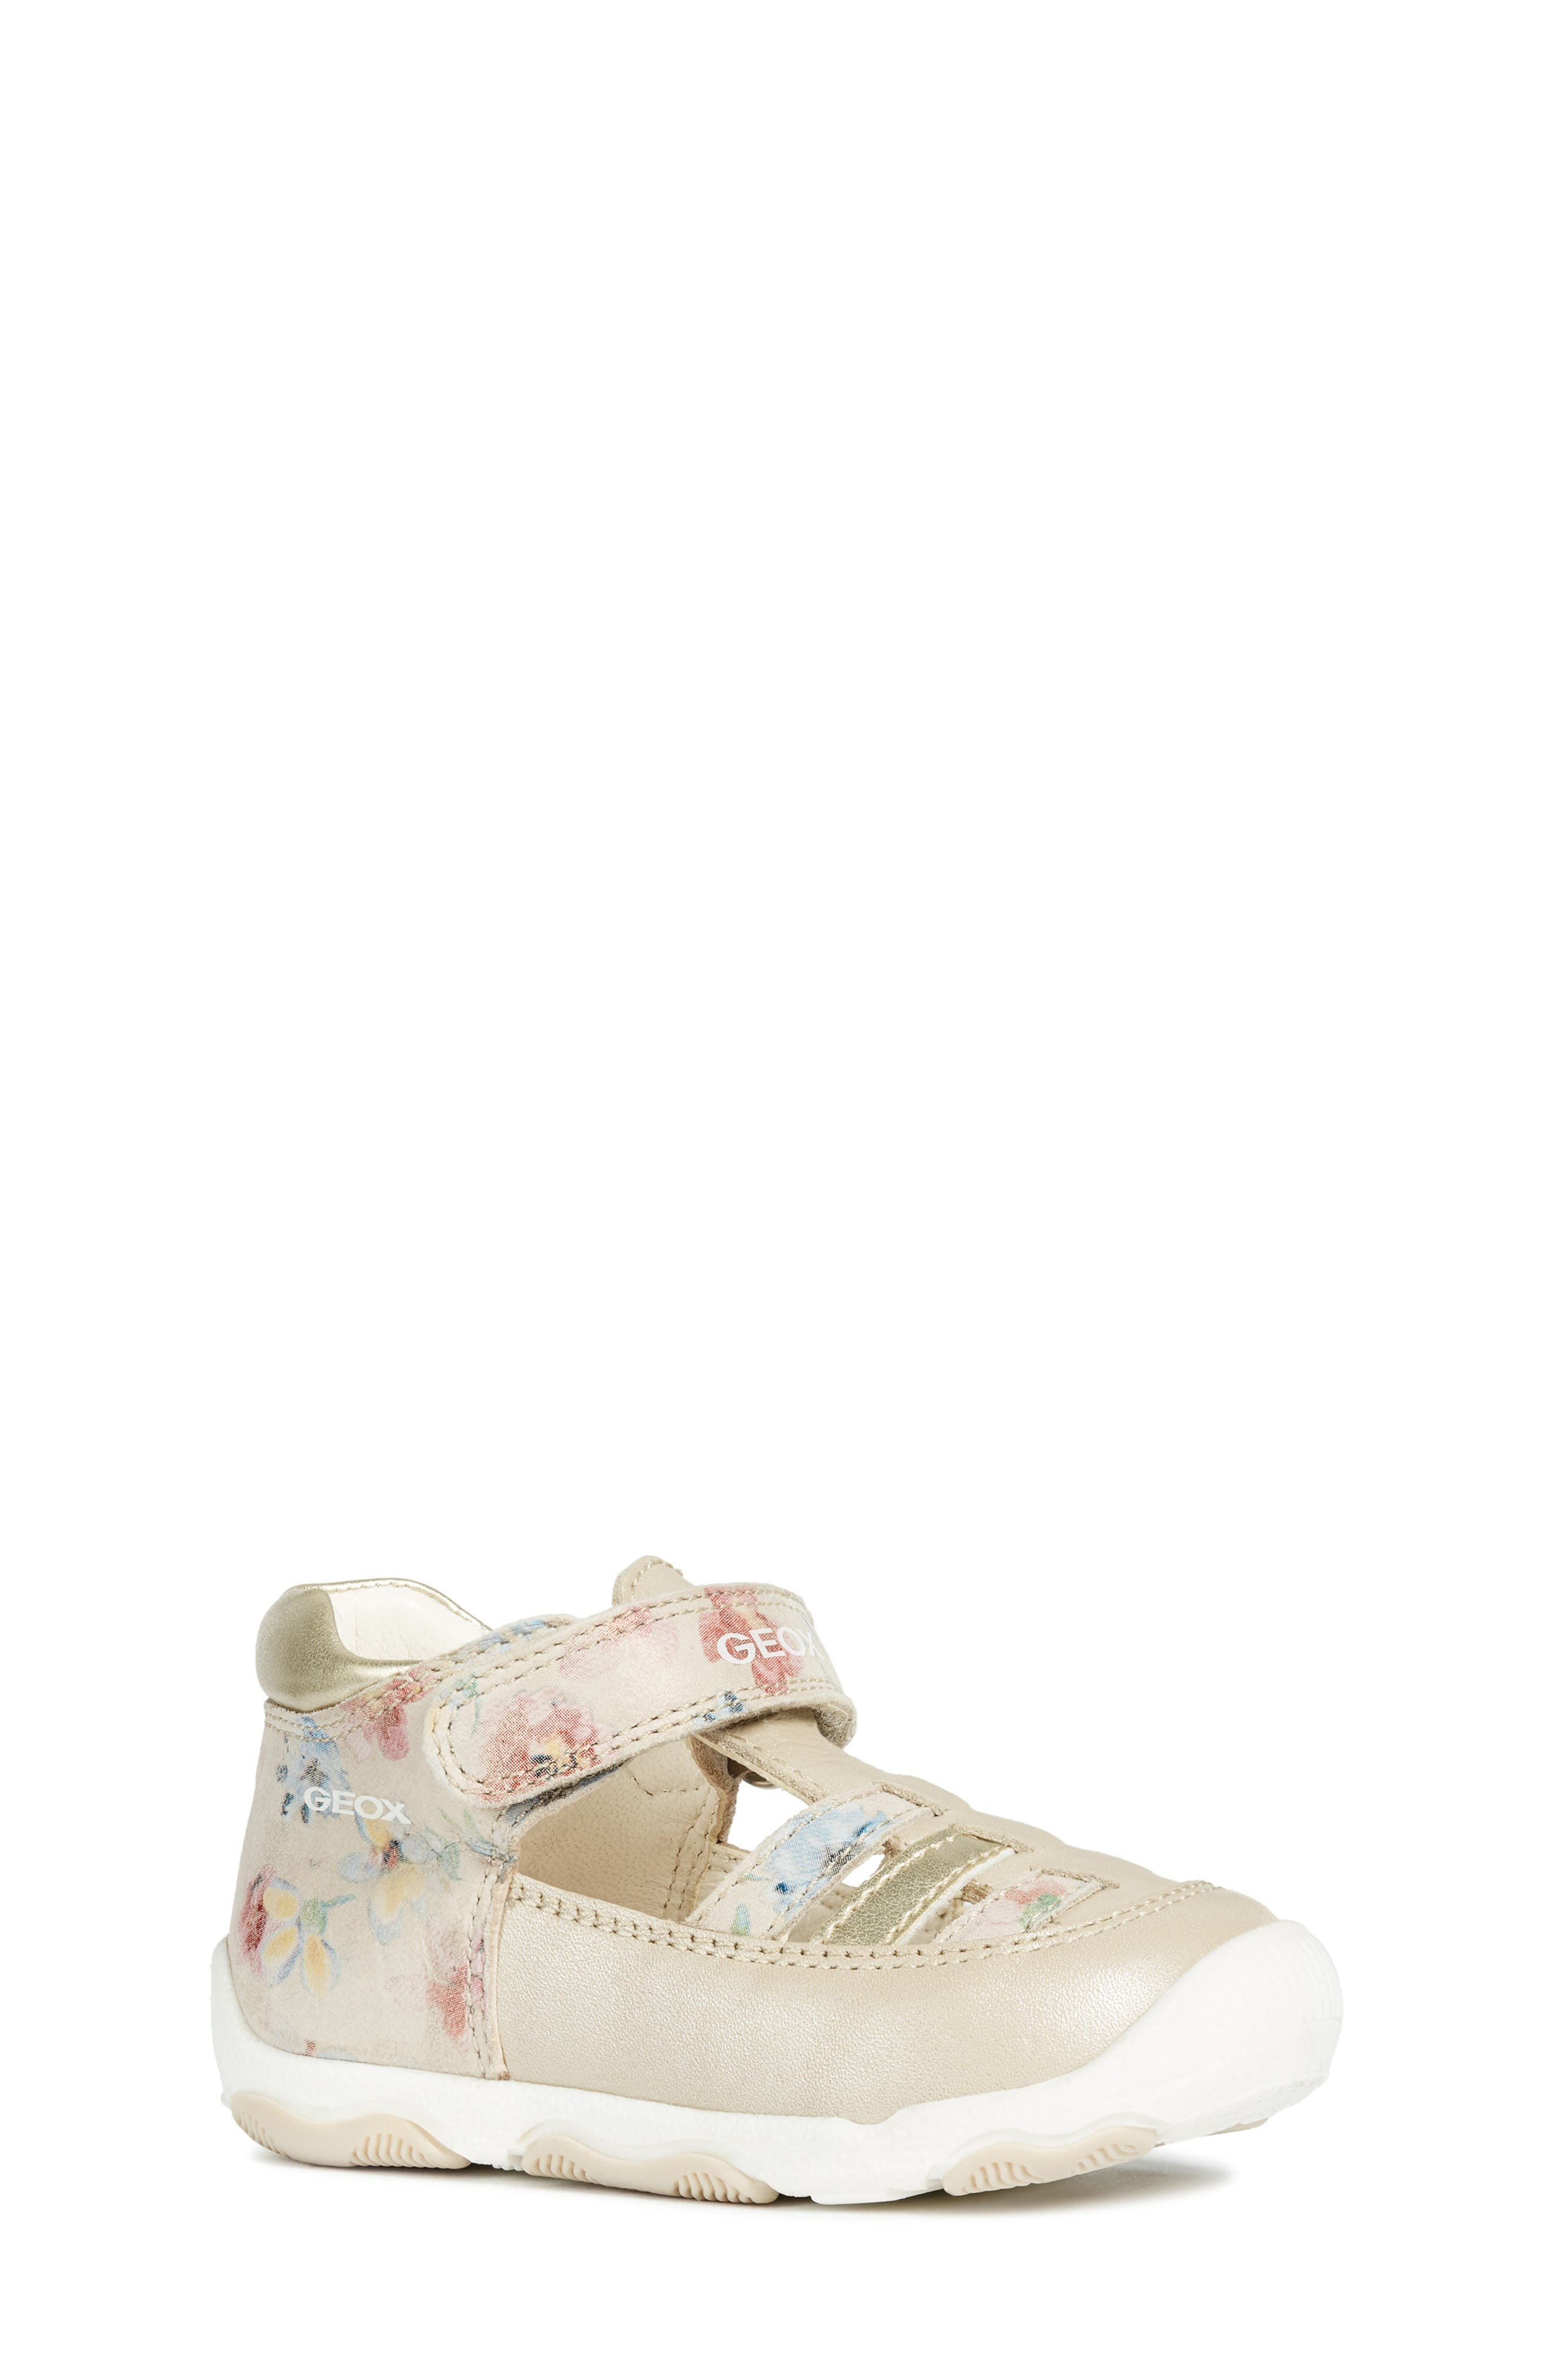 Boys' Shoes Kids' Clothing, Shoes & Accs Geox Respira Designer Boys Sand/blue Early Walkers Uk Infants Size 3.5